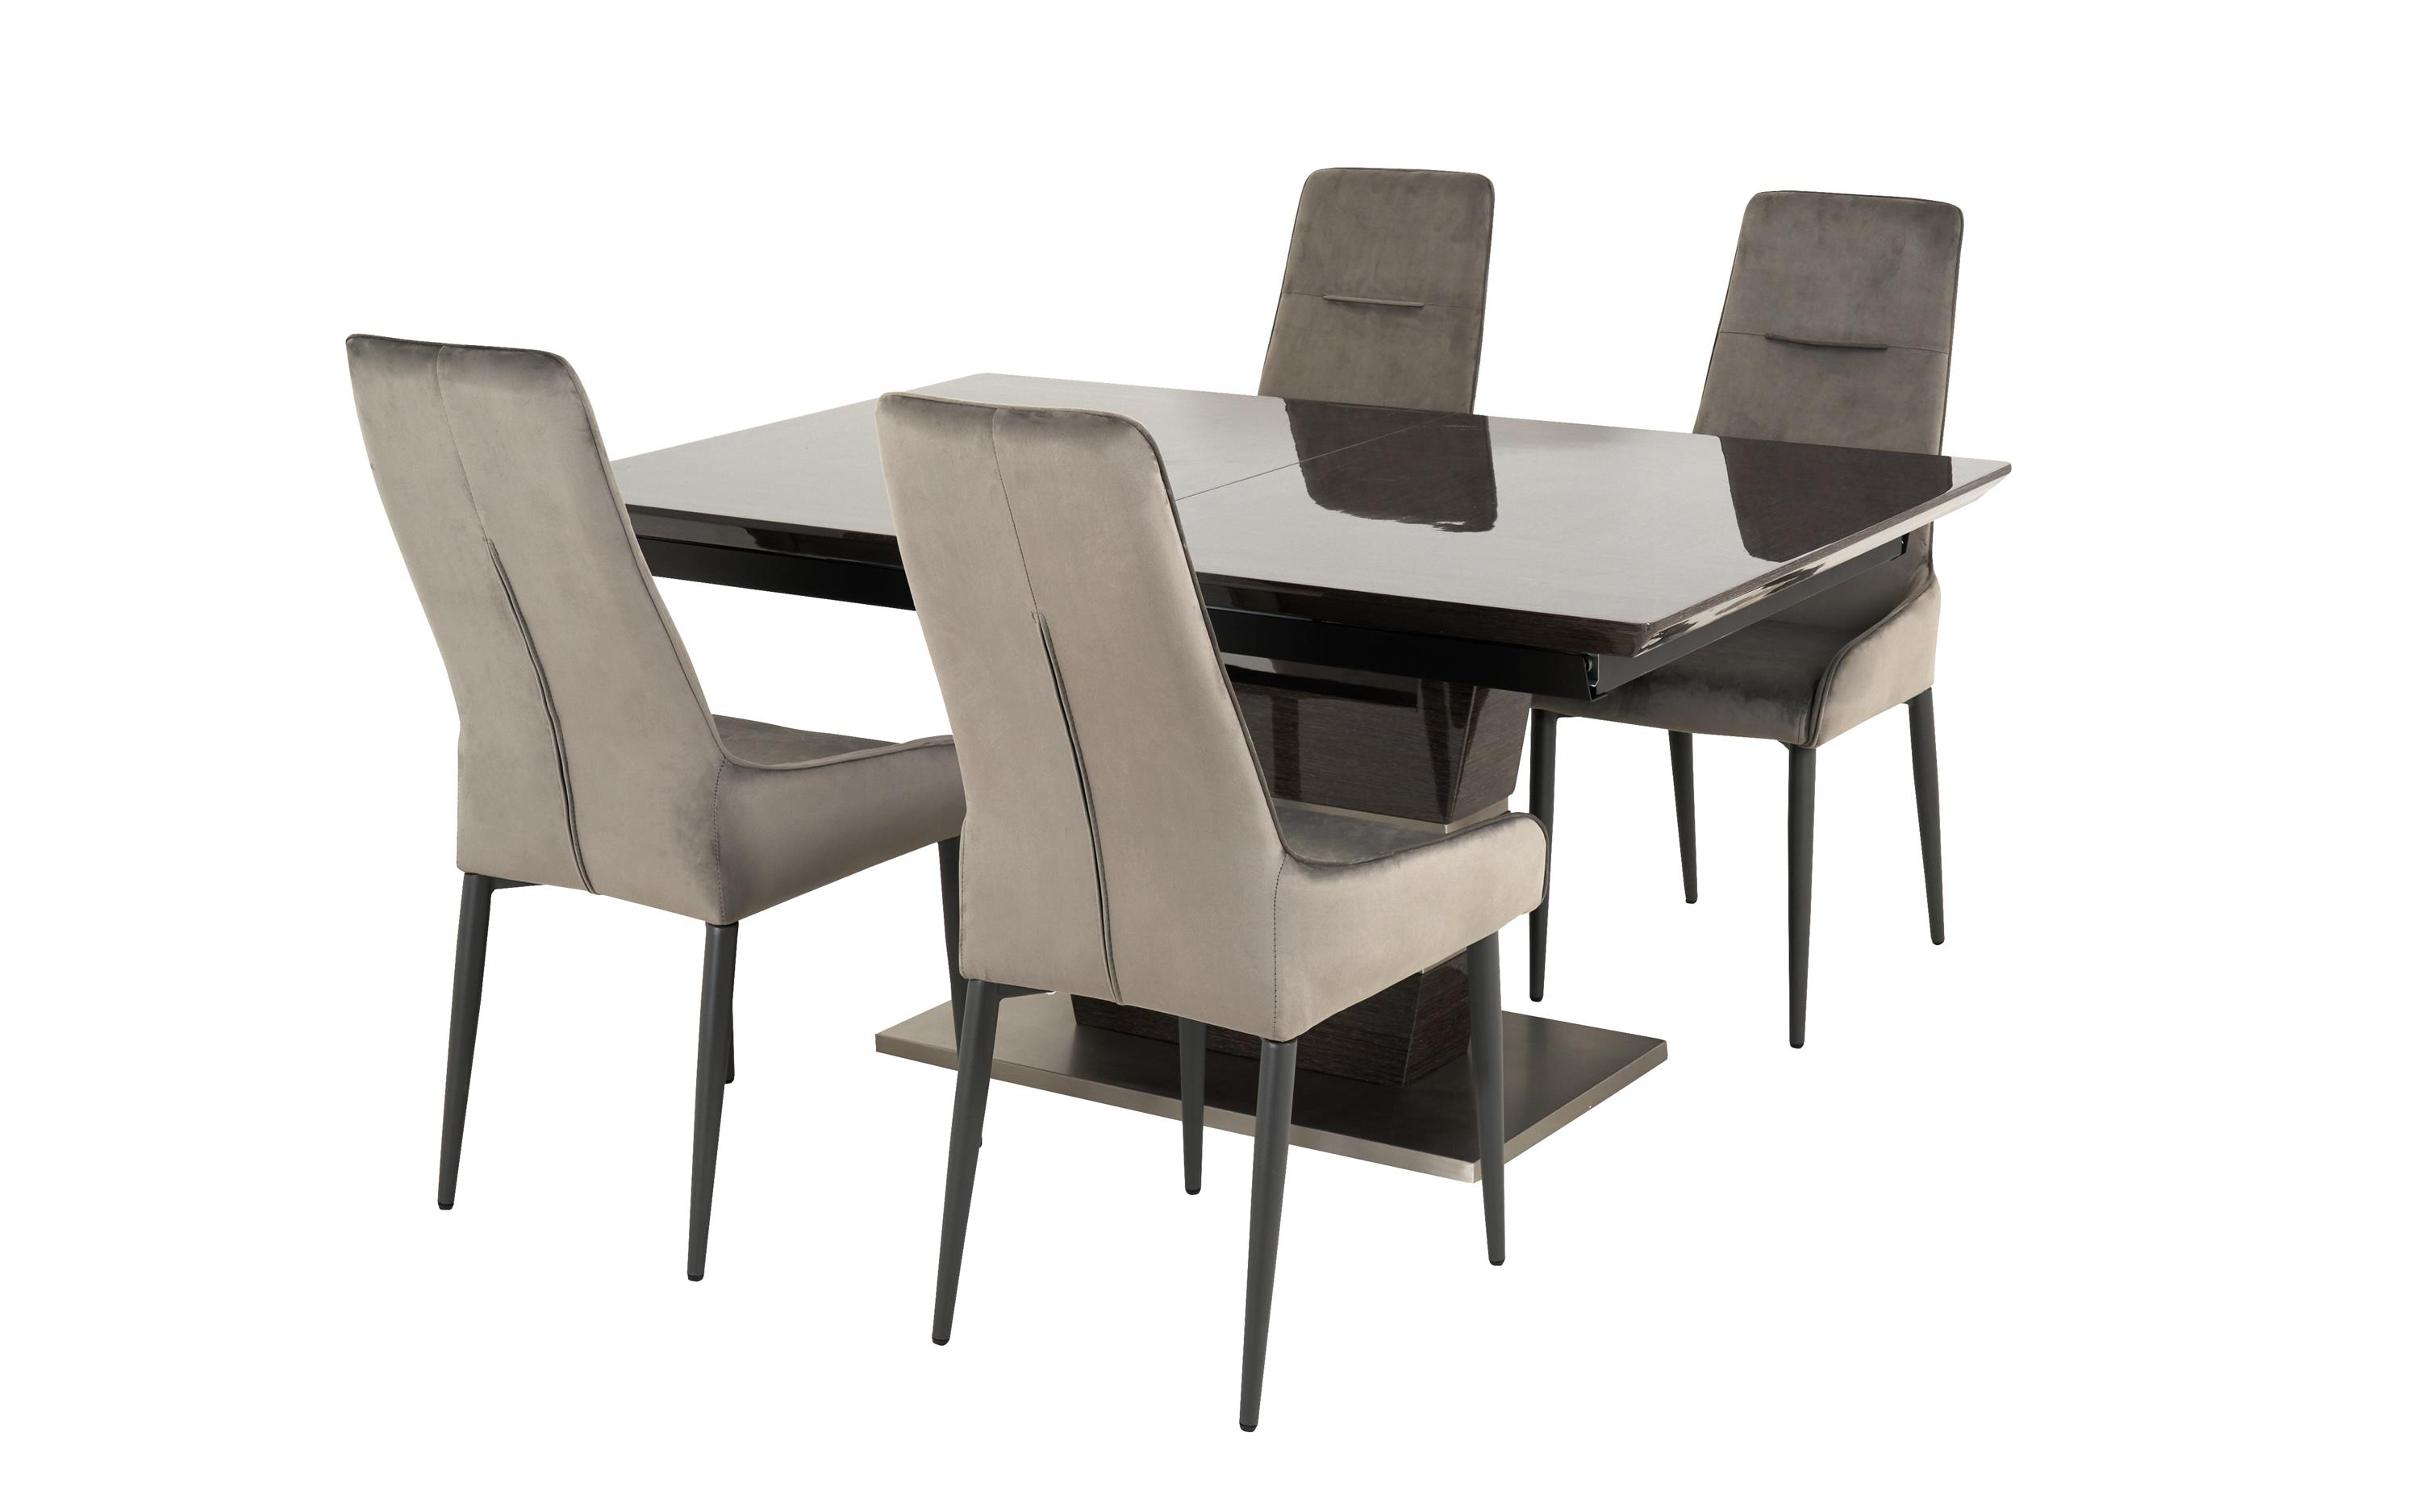 Sisi Italia San Pietro 1.6m Extending Dining Table & 4 Arm Chairs, , large